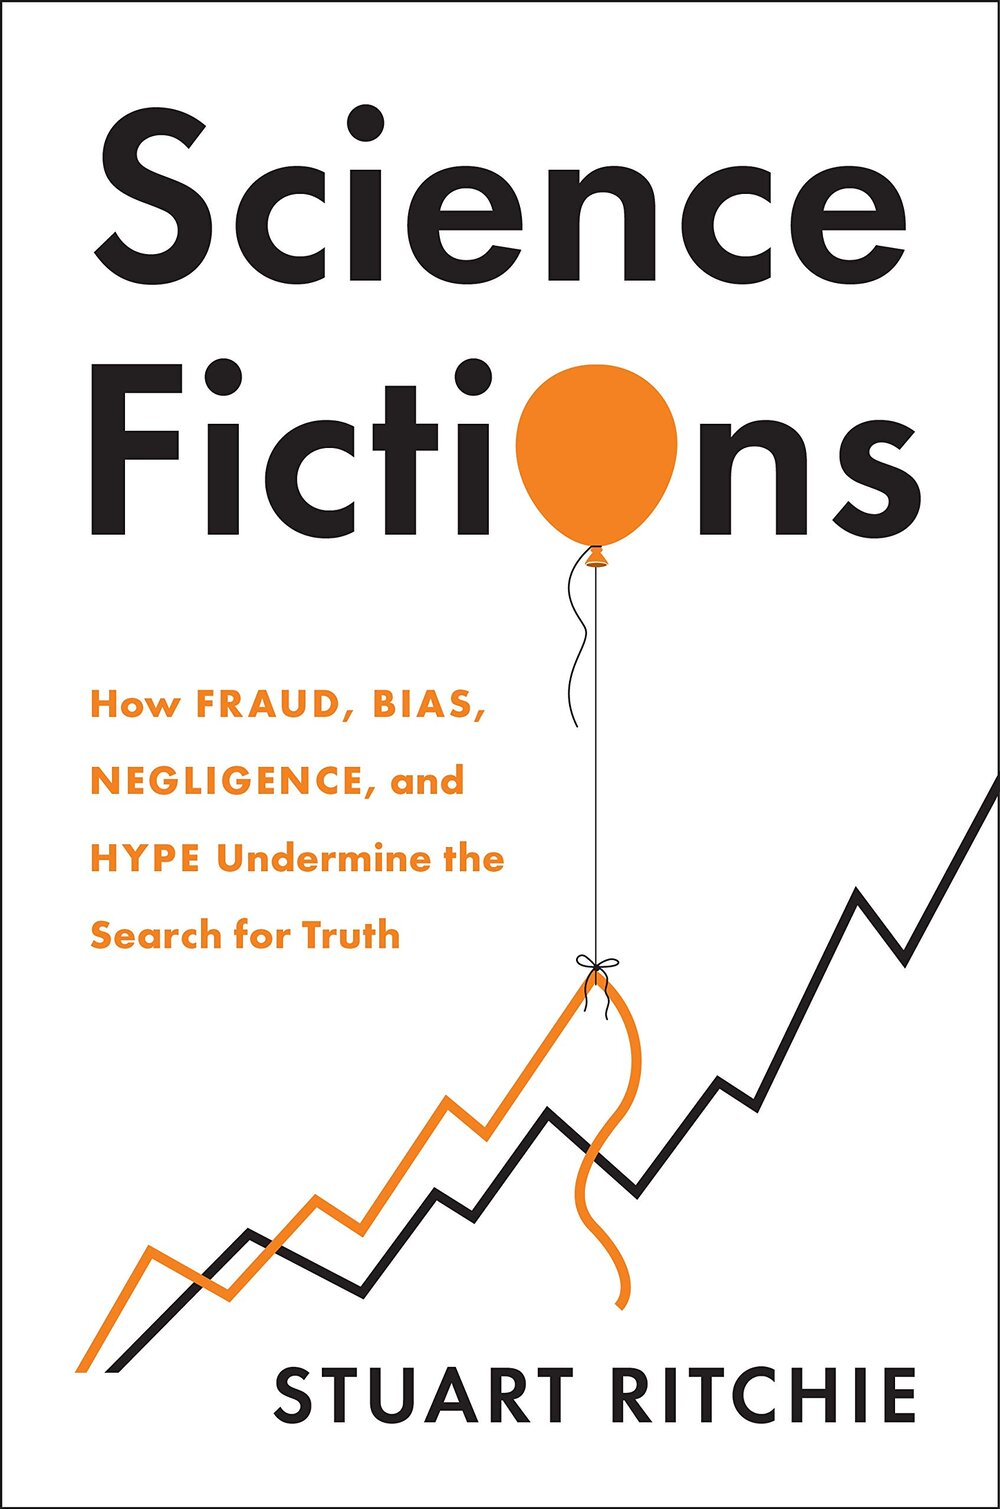 Science Fictions: How Fraud, Bias, Negligence, and Hype Undermine the Search for Truth by Stuart Ritchie